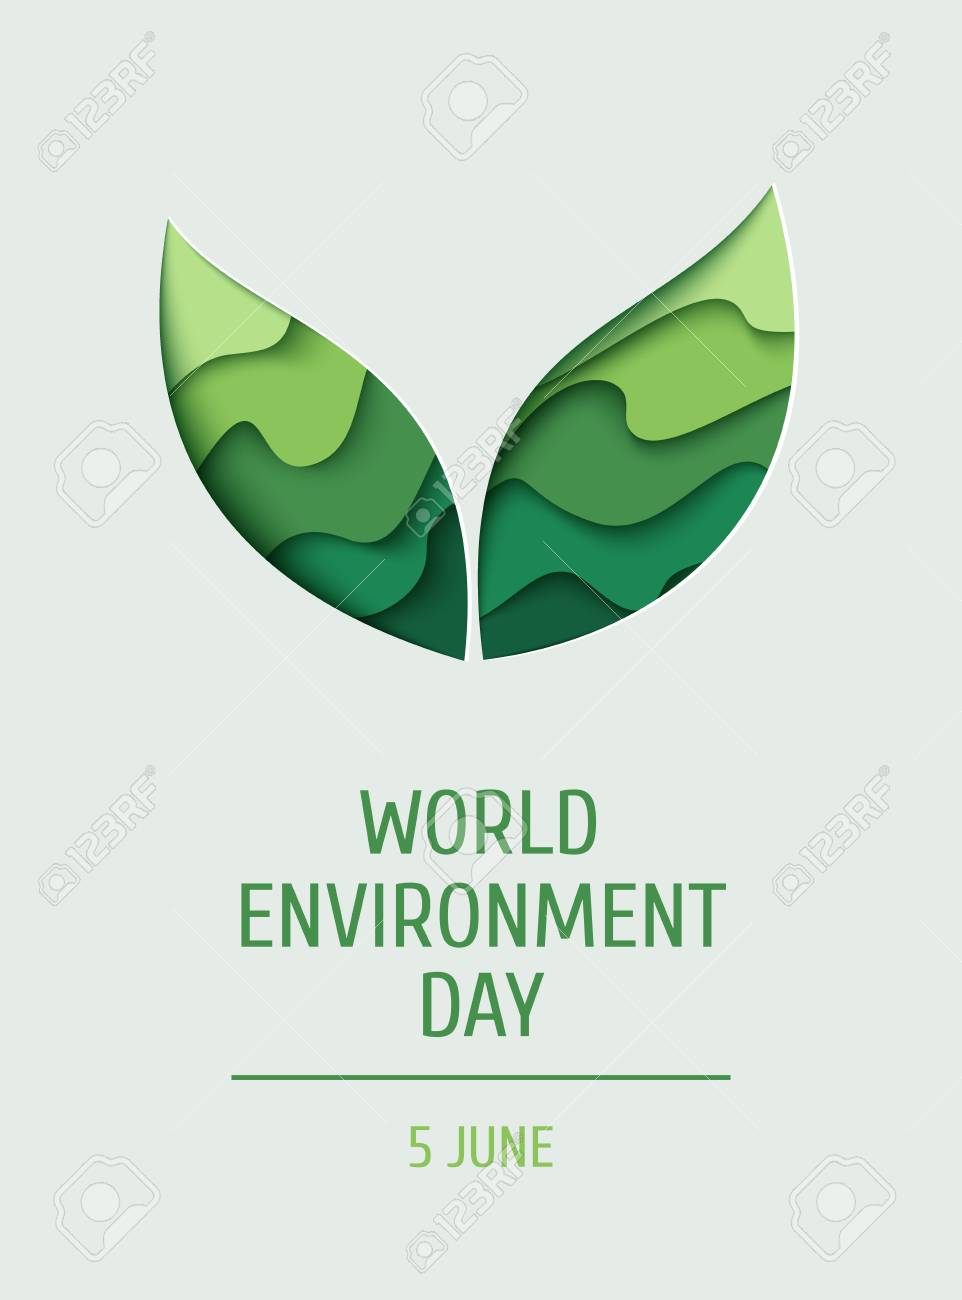 world environment day concept banner 3d paper cut eco friendly